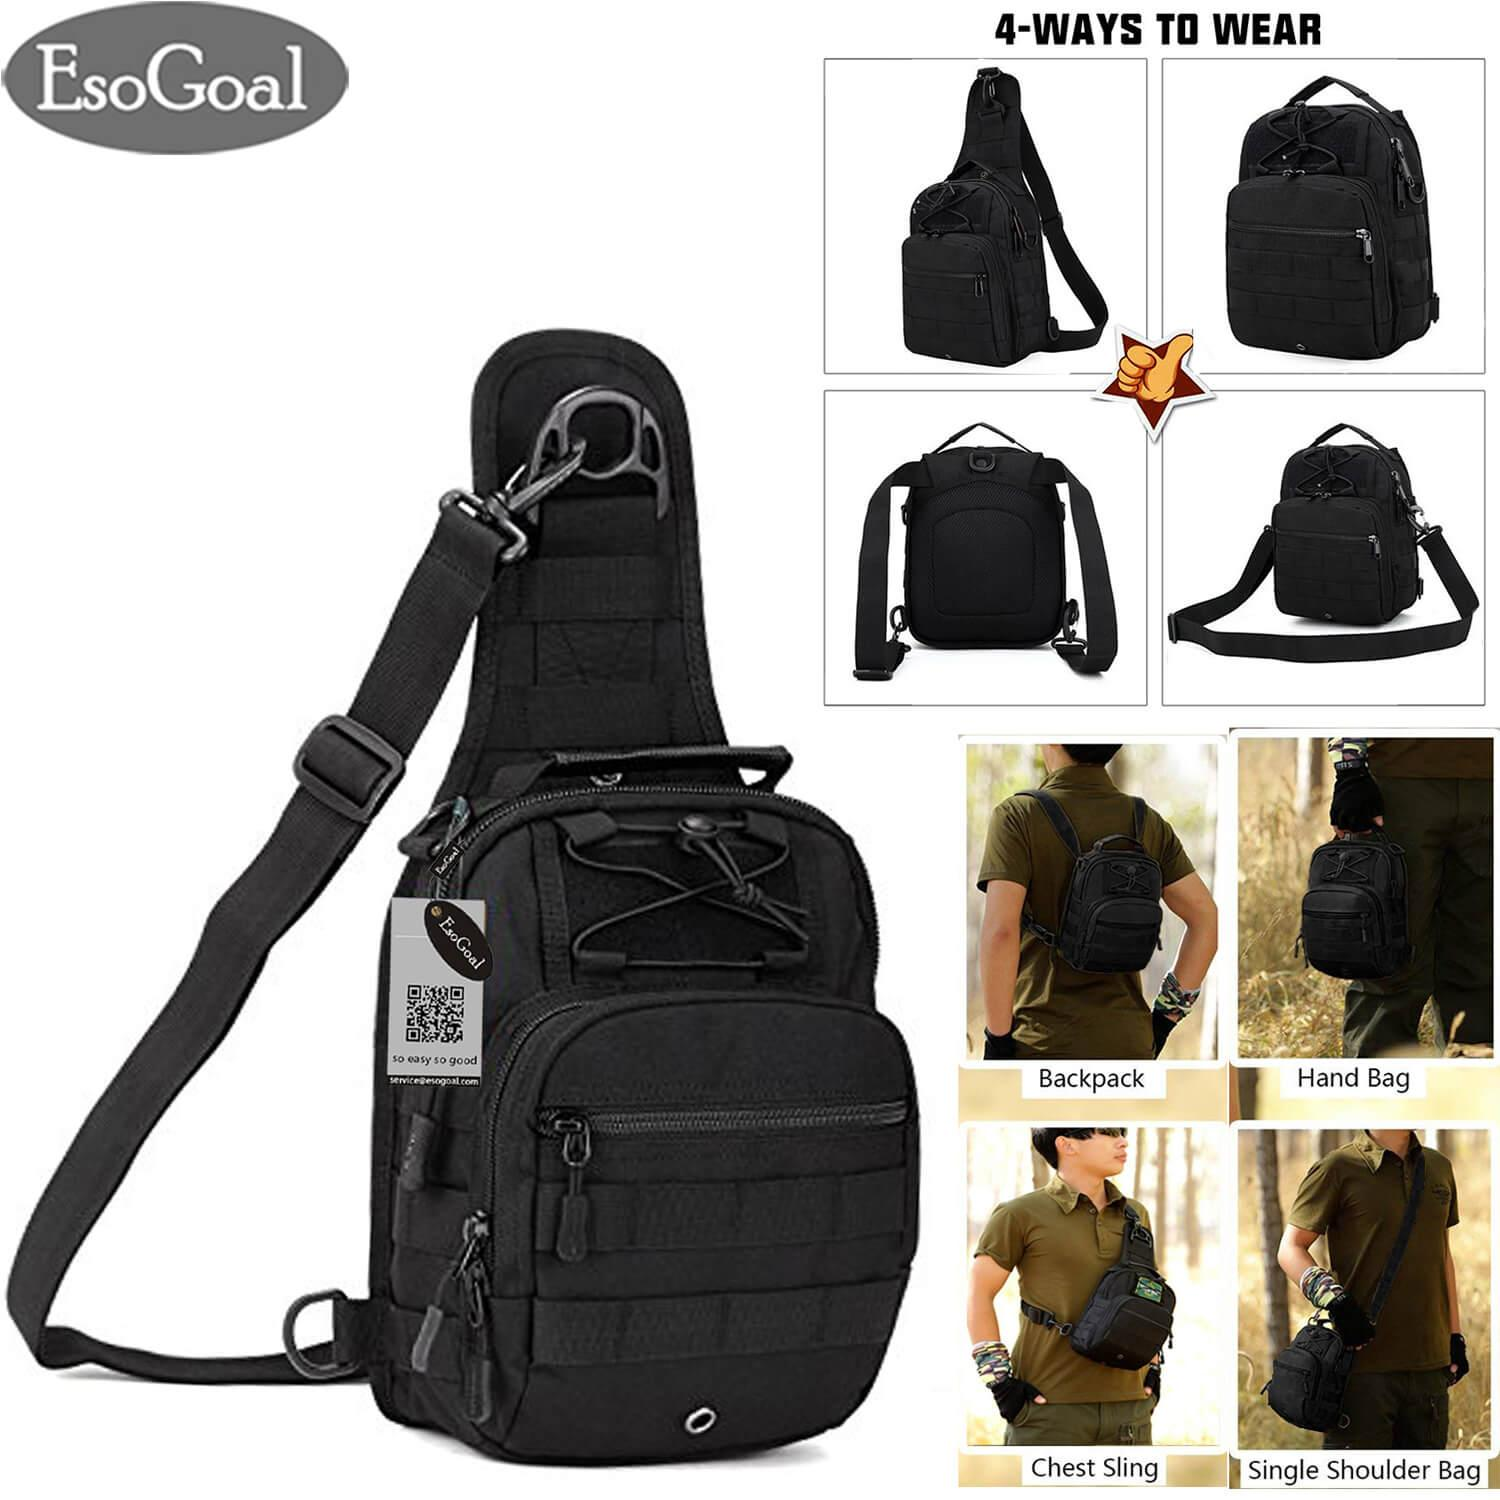 e0675d97a0 EsoGoal Military Tactical Chest Backpack Shoulder Bag Sling Daypack Travel  Bag Pack for Hunting